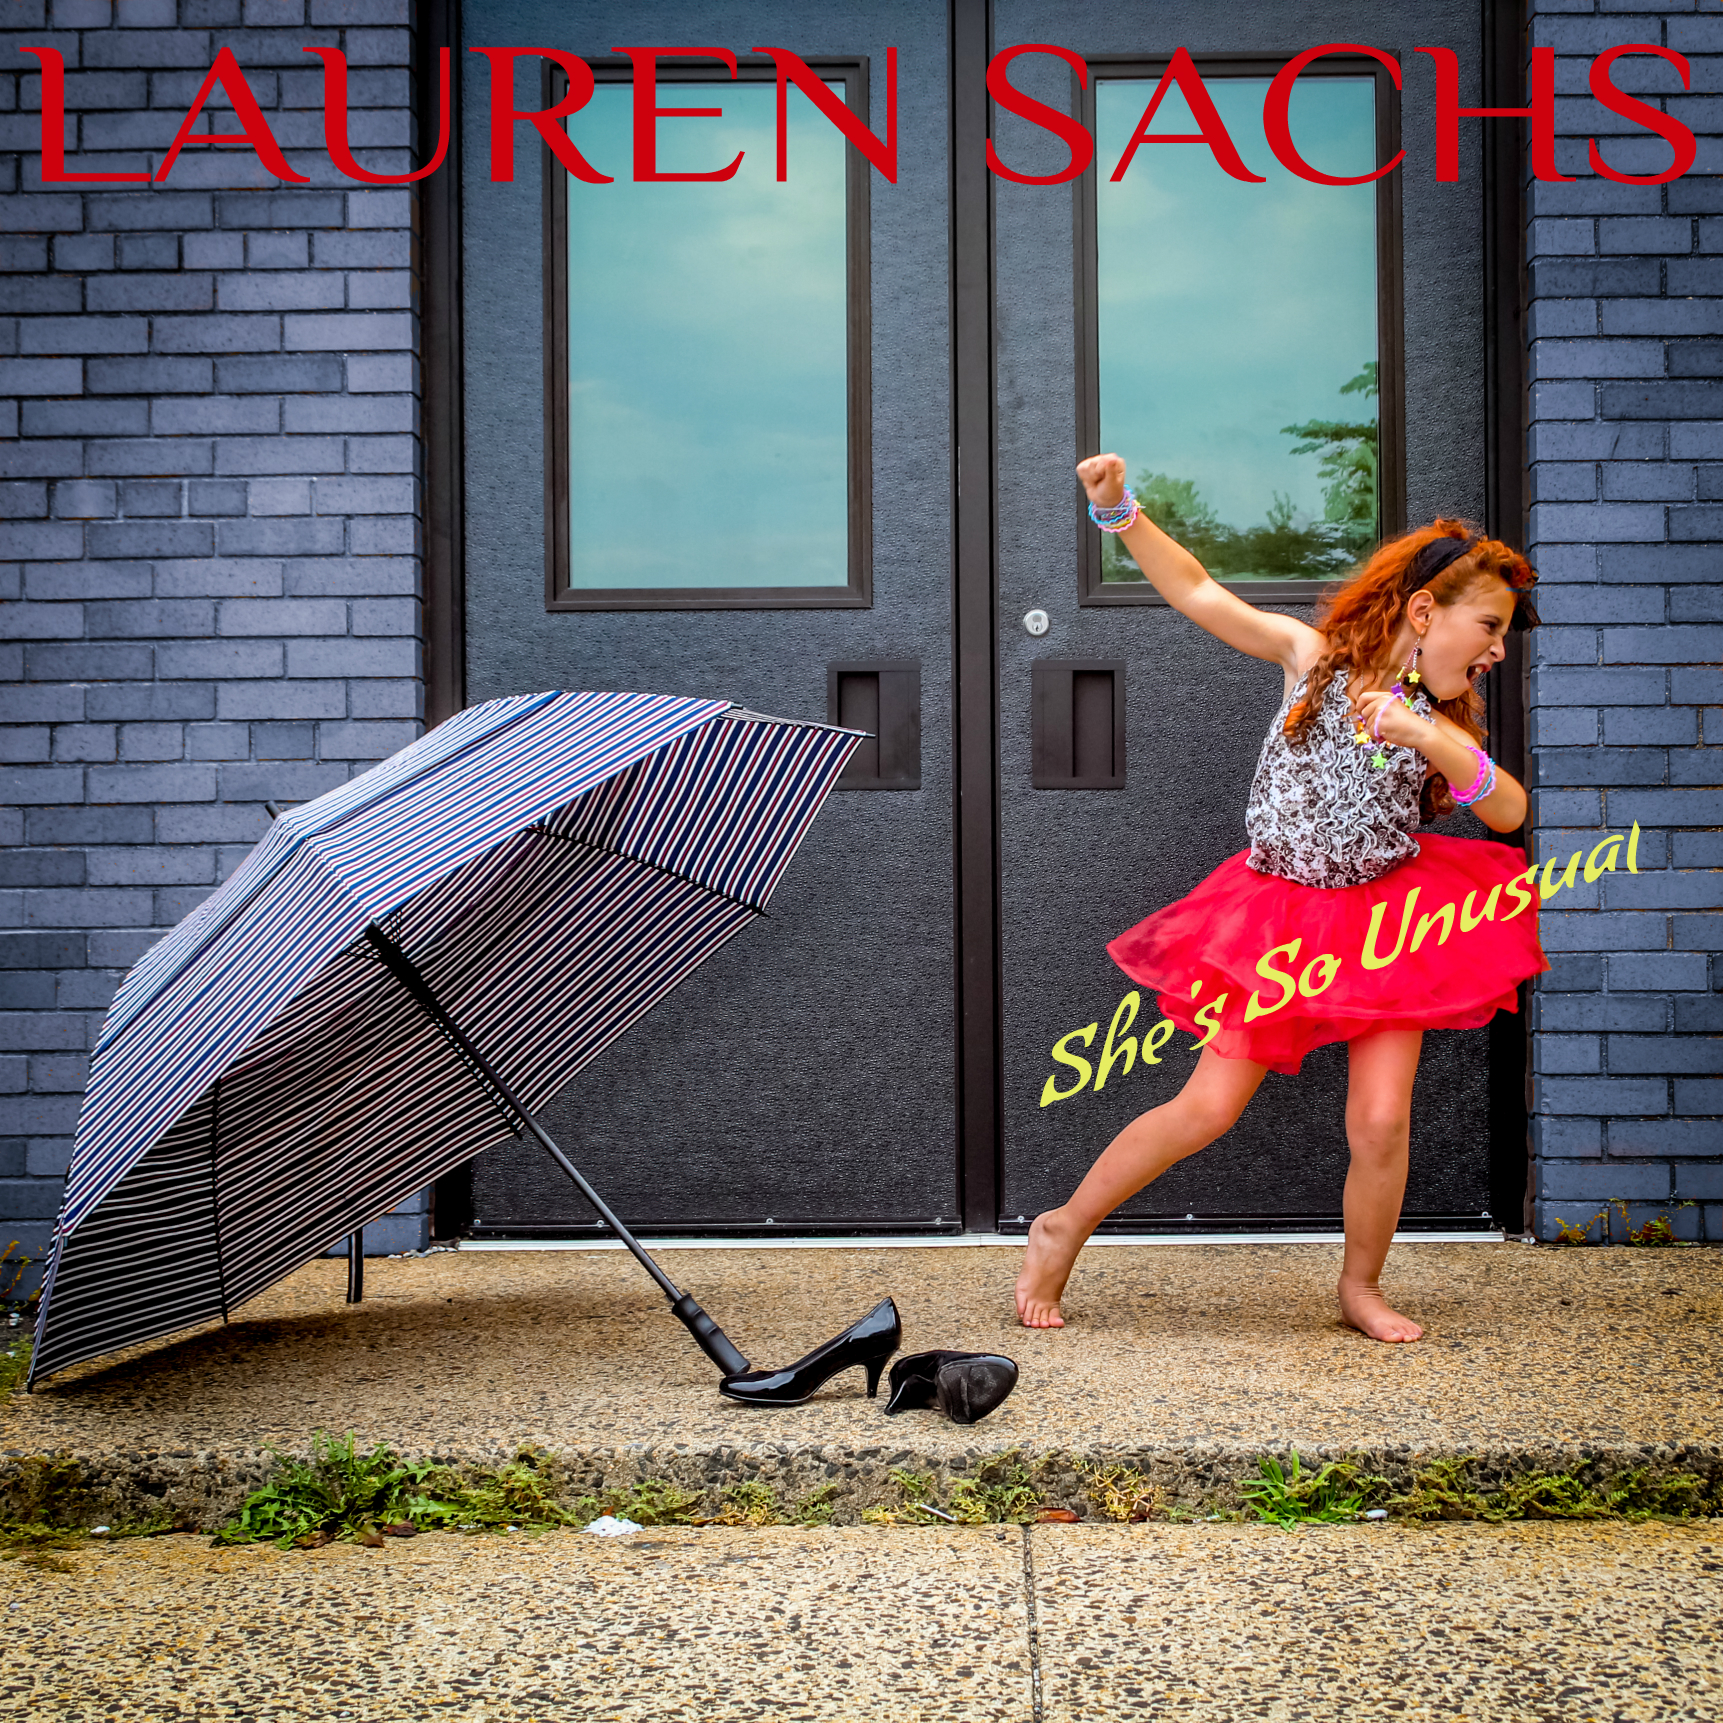 LaurenSachs-Unusual1.jpg